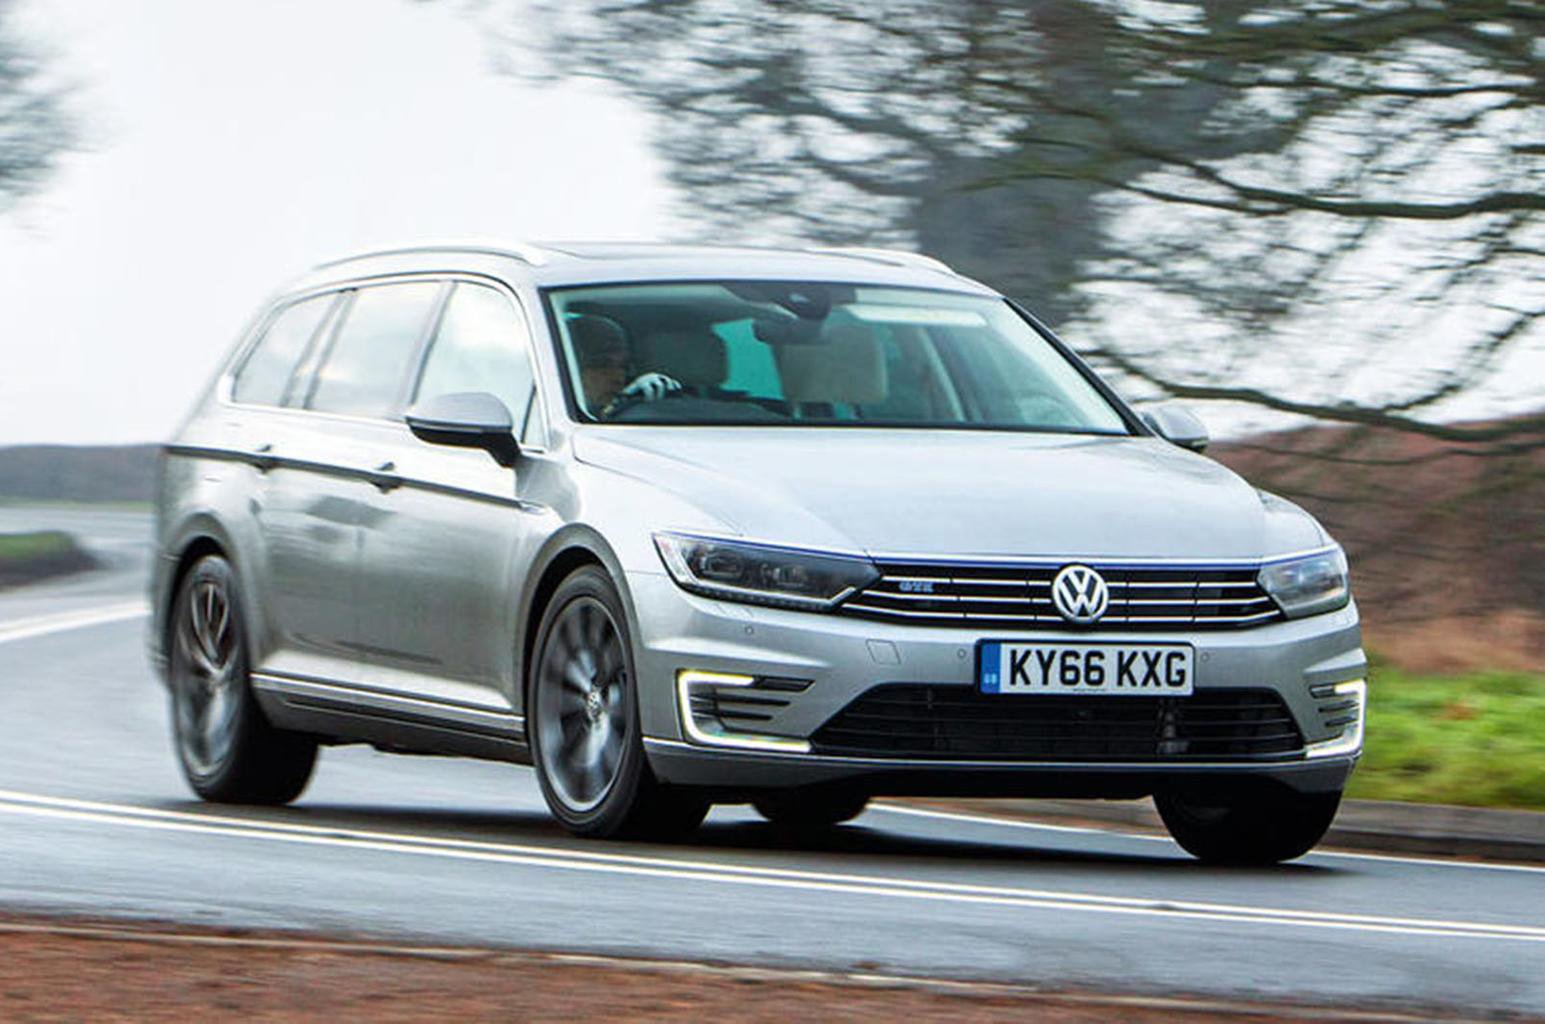 Used Volkswagen Passat Estate 16-present